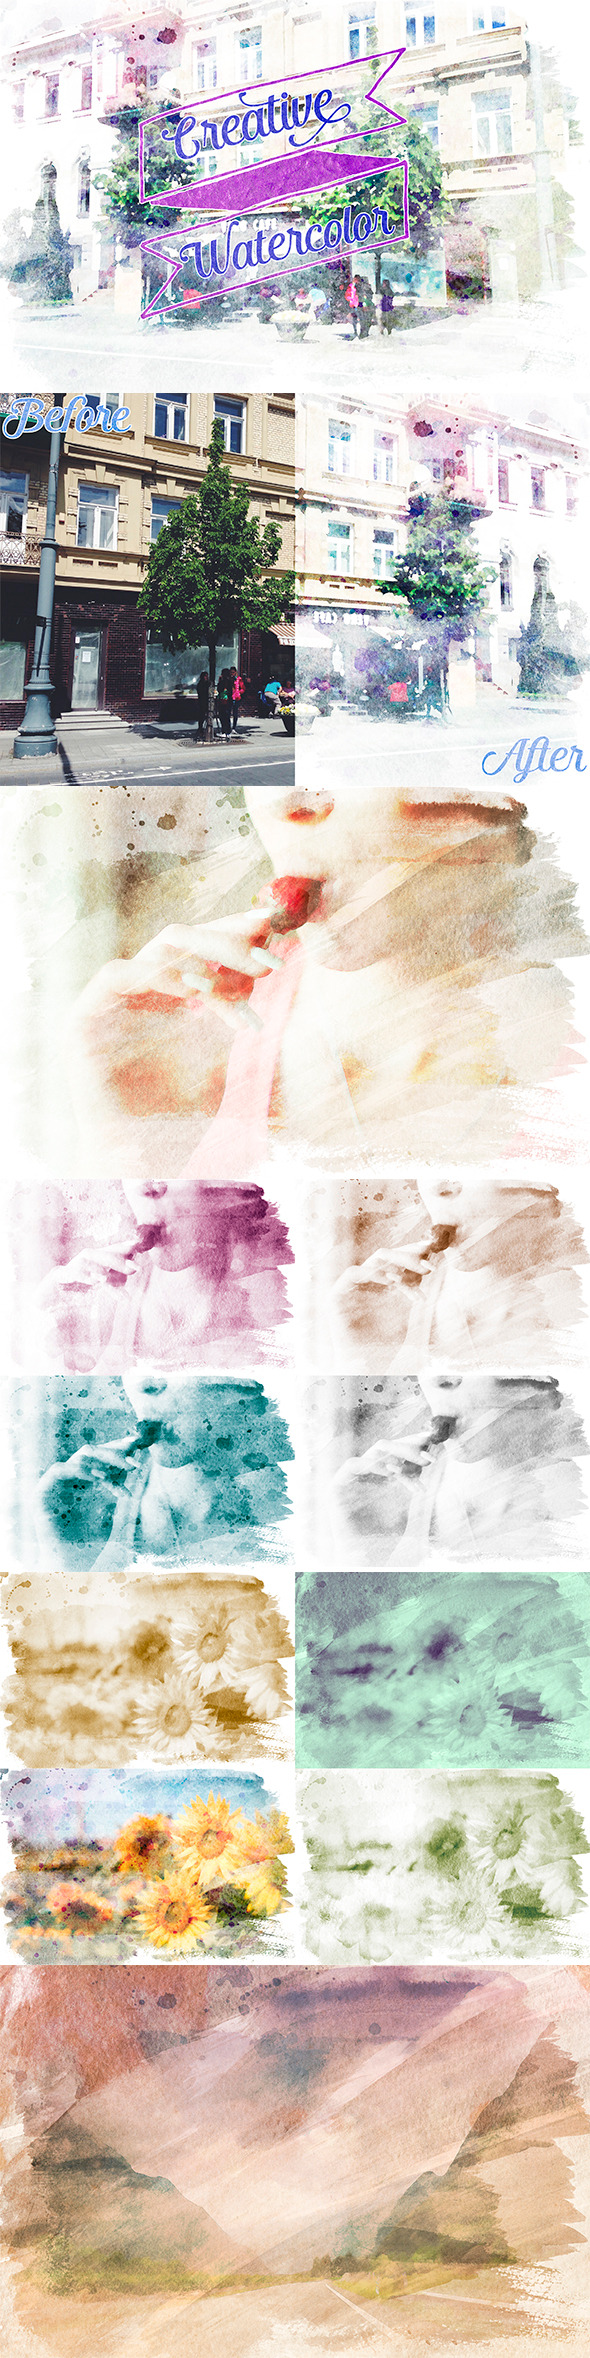 GraphicRiver Creative Watercolor Painting Vol 02 10070205